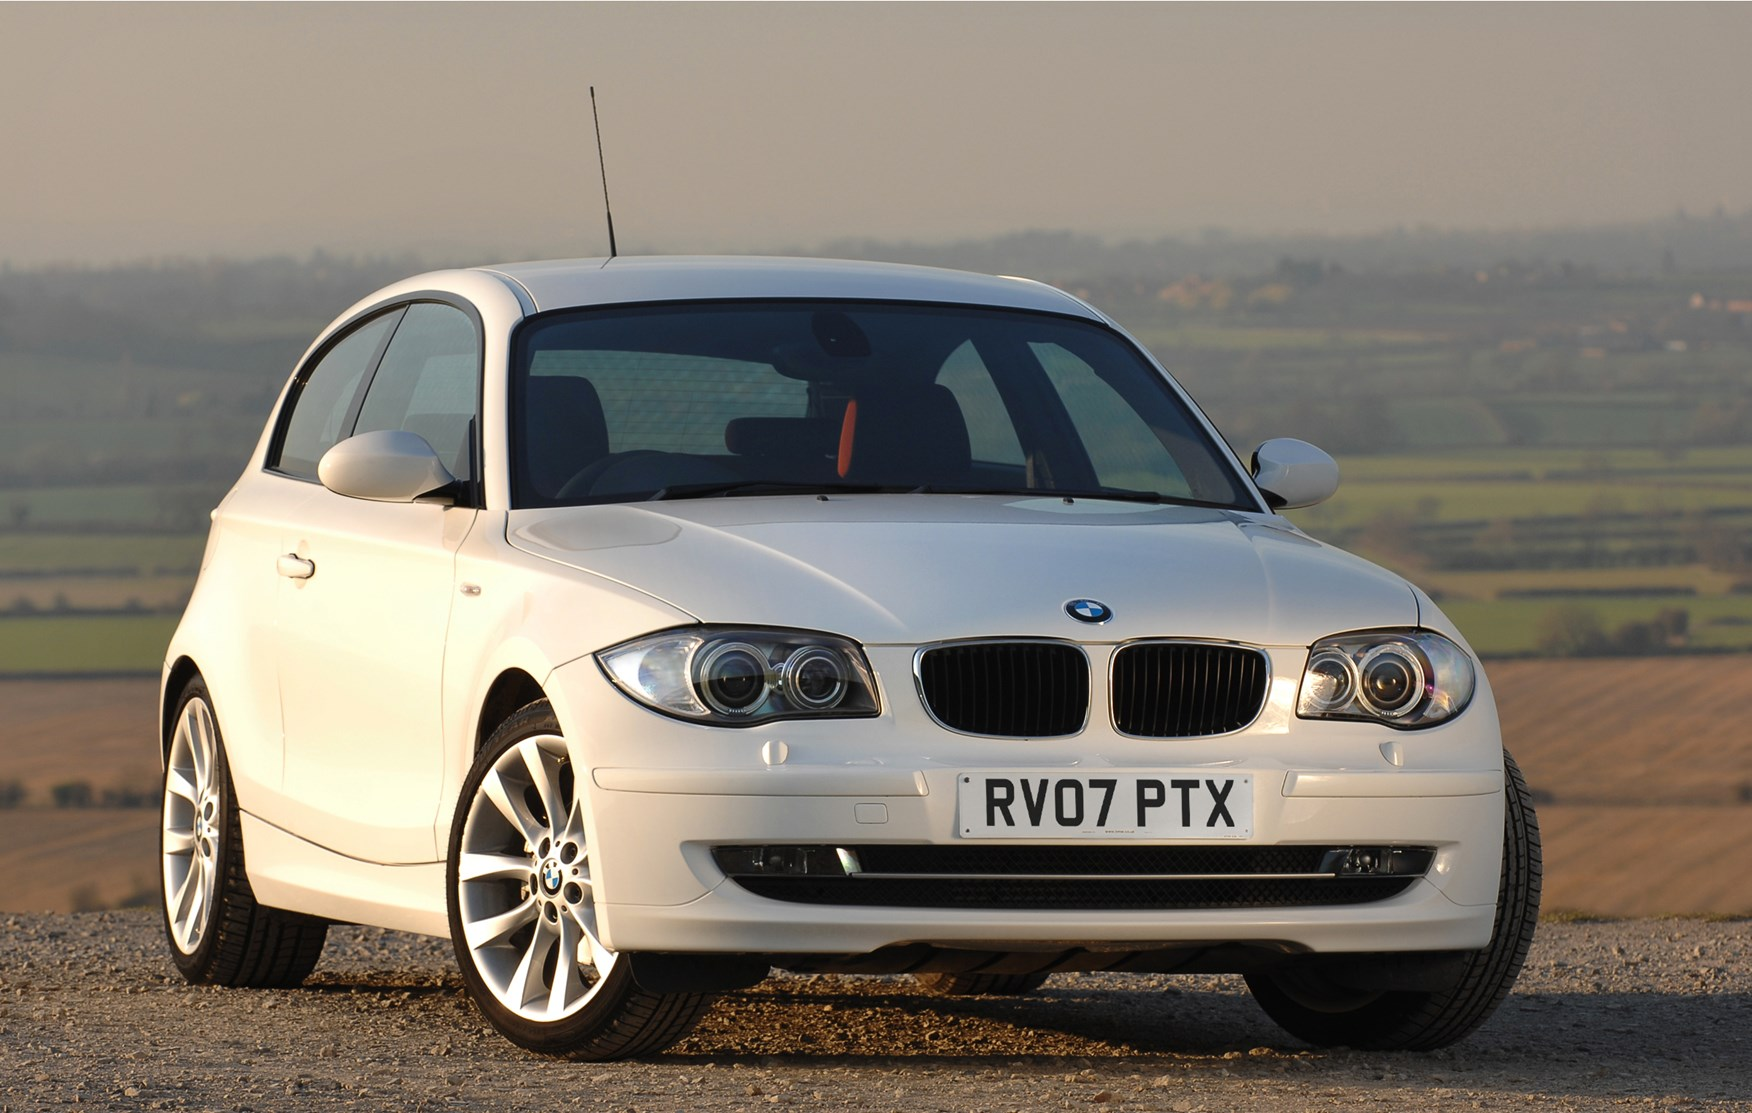 BMW 1 Series I (E81/E82/E87/E88) 2004 - 2007 Hatchback 5 door #6